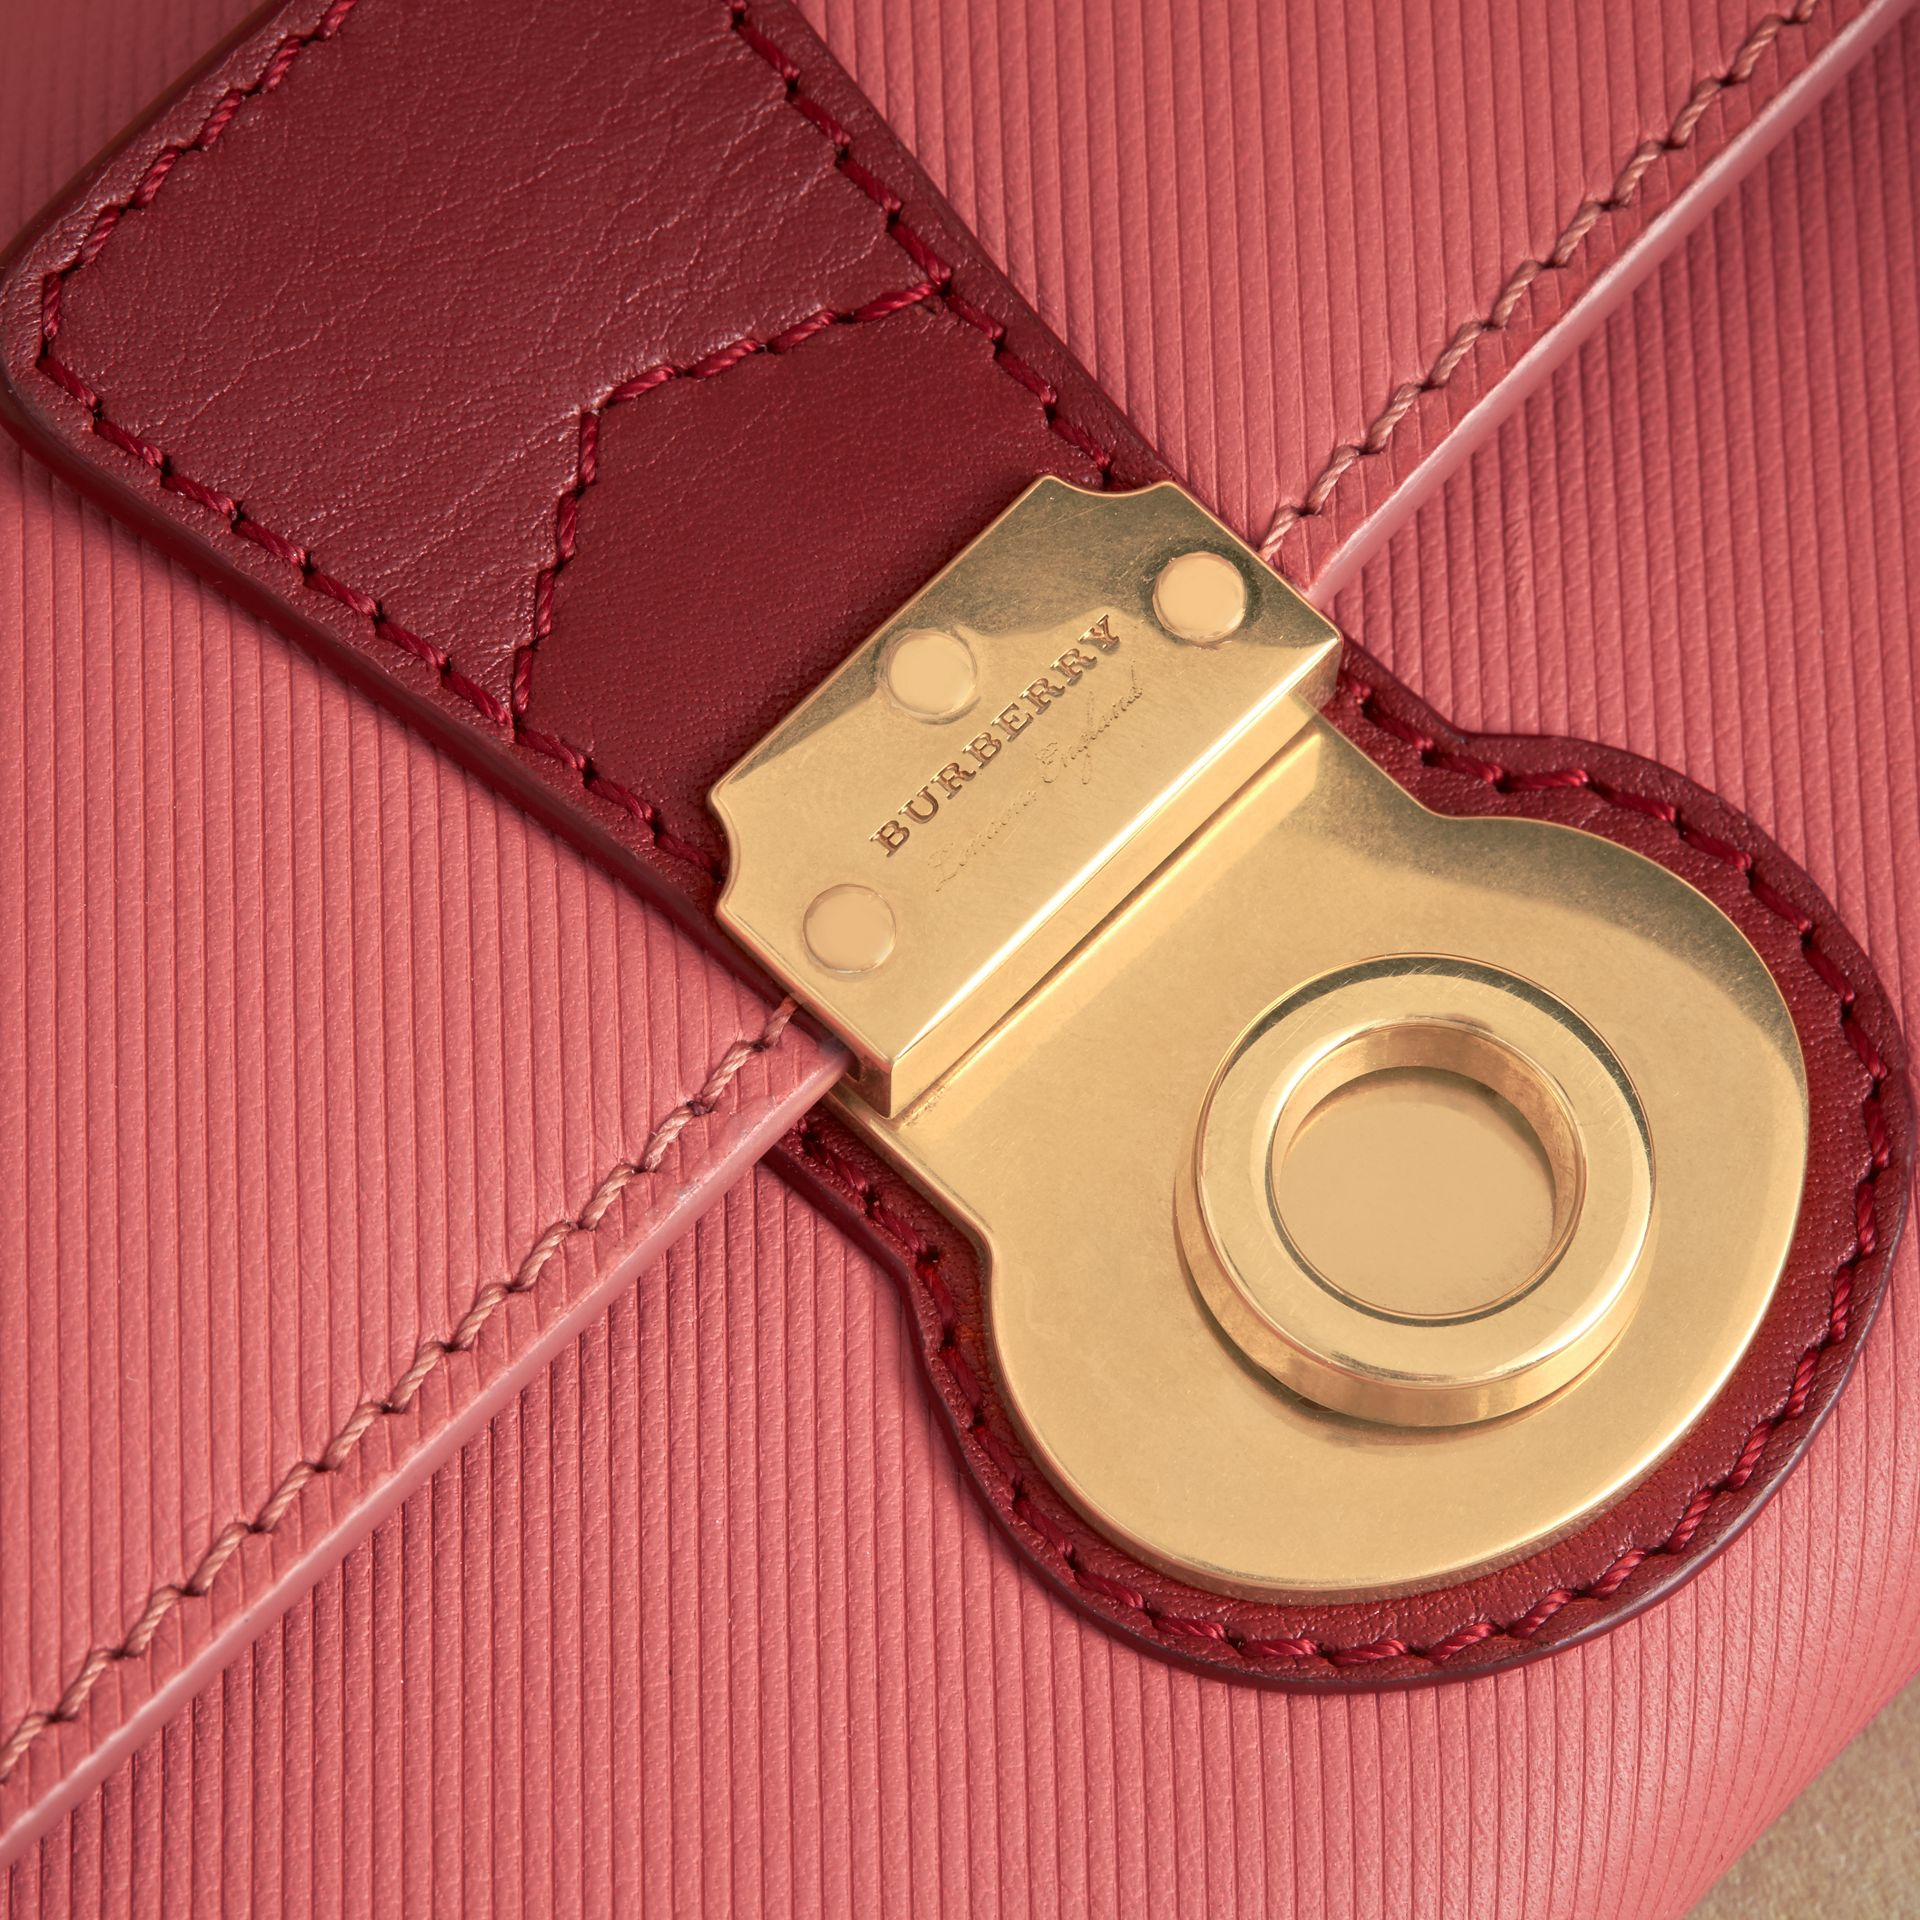 Two-tone Trench Leather Continental Wallet in Blossom Pink/antique Red - Women | Burberry Singapore - gallery image 2